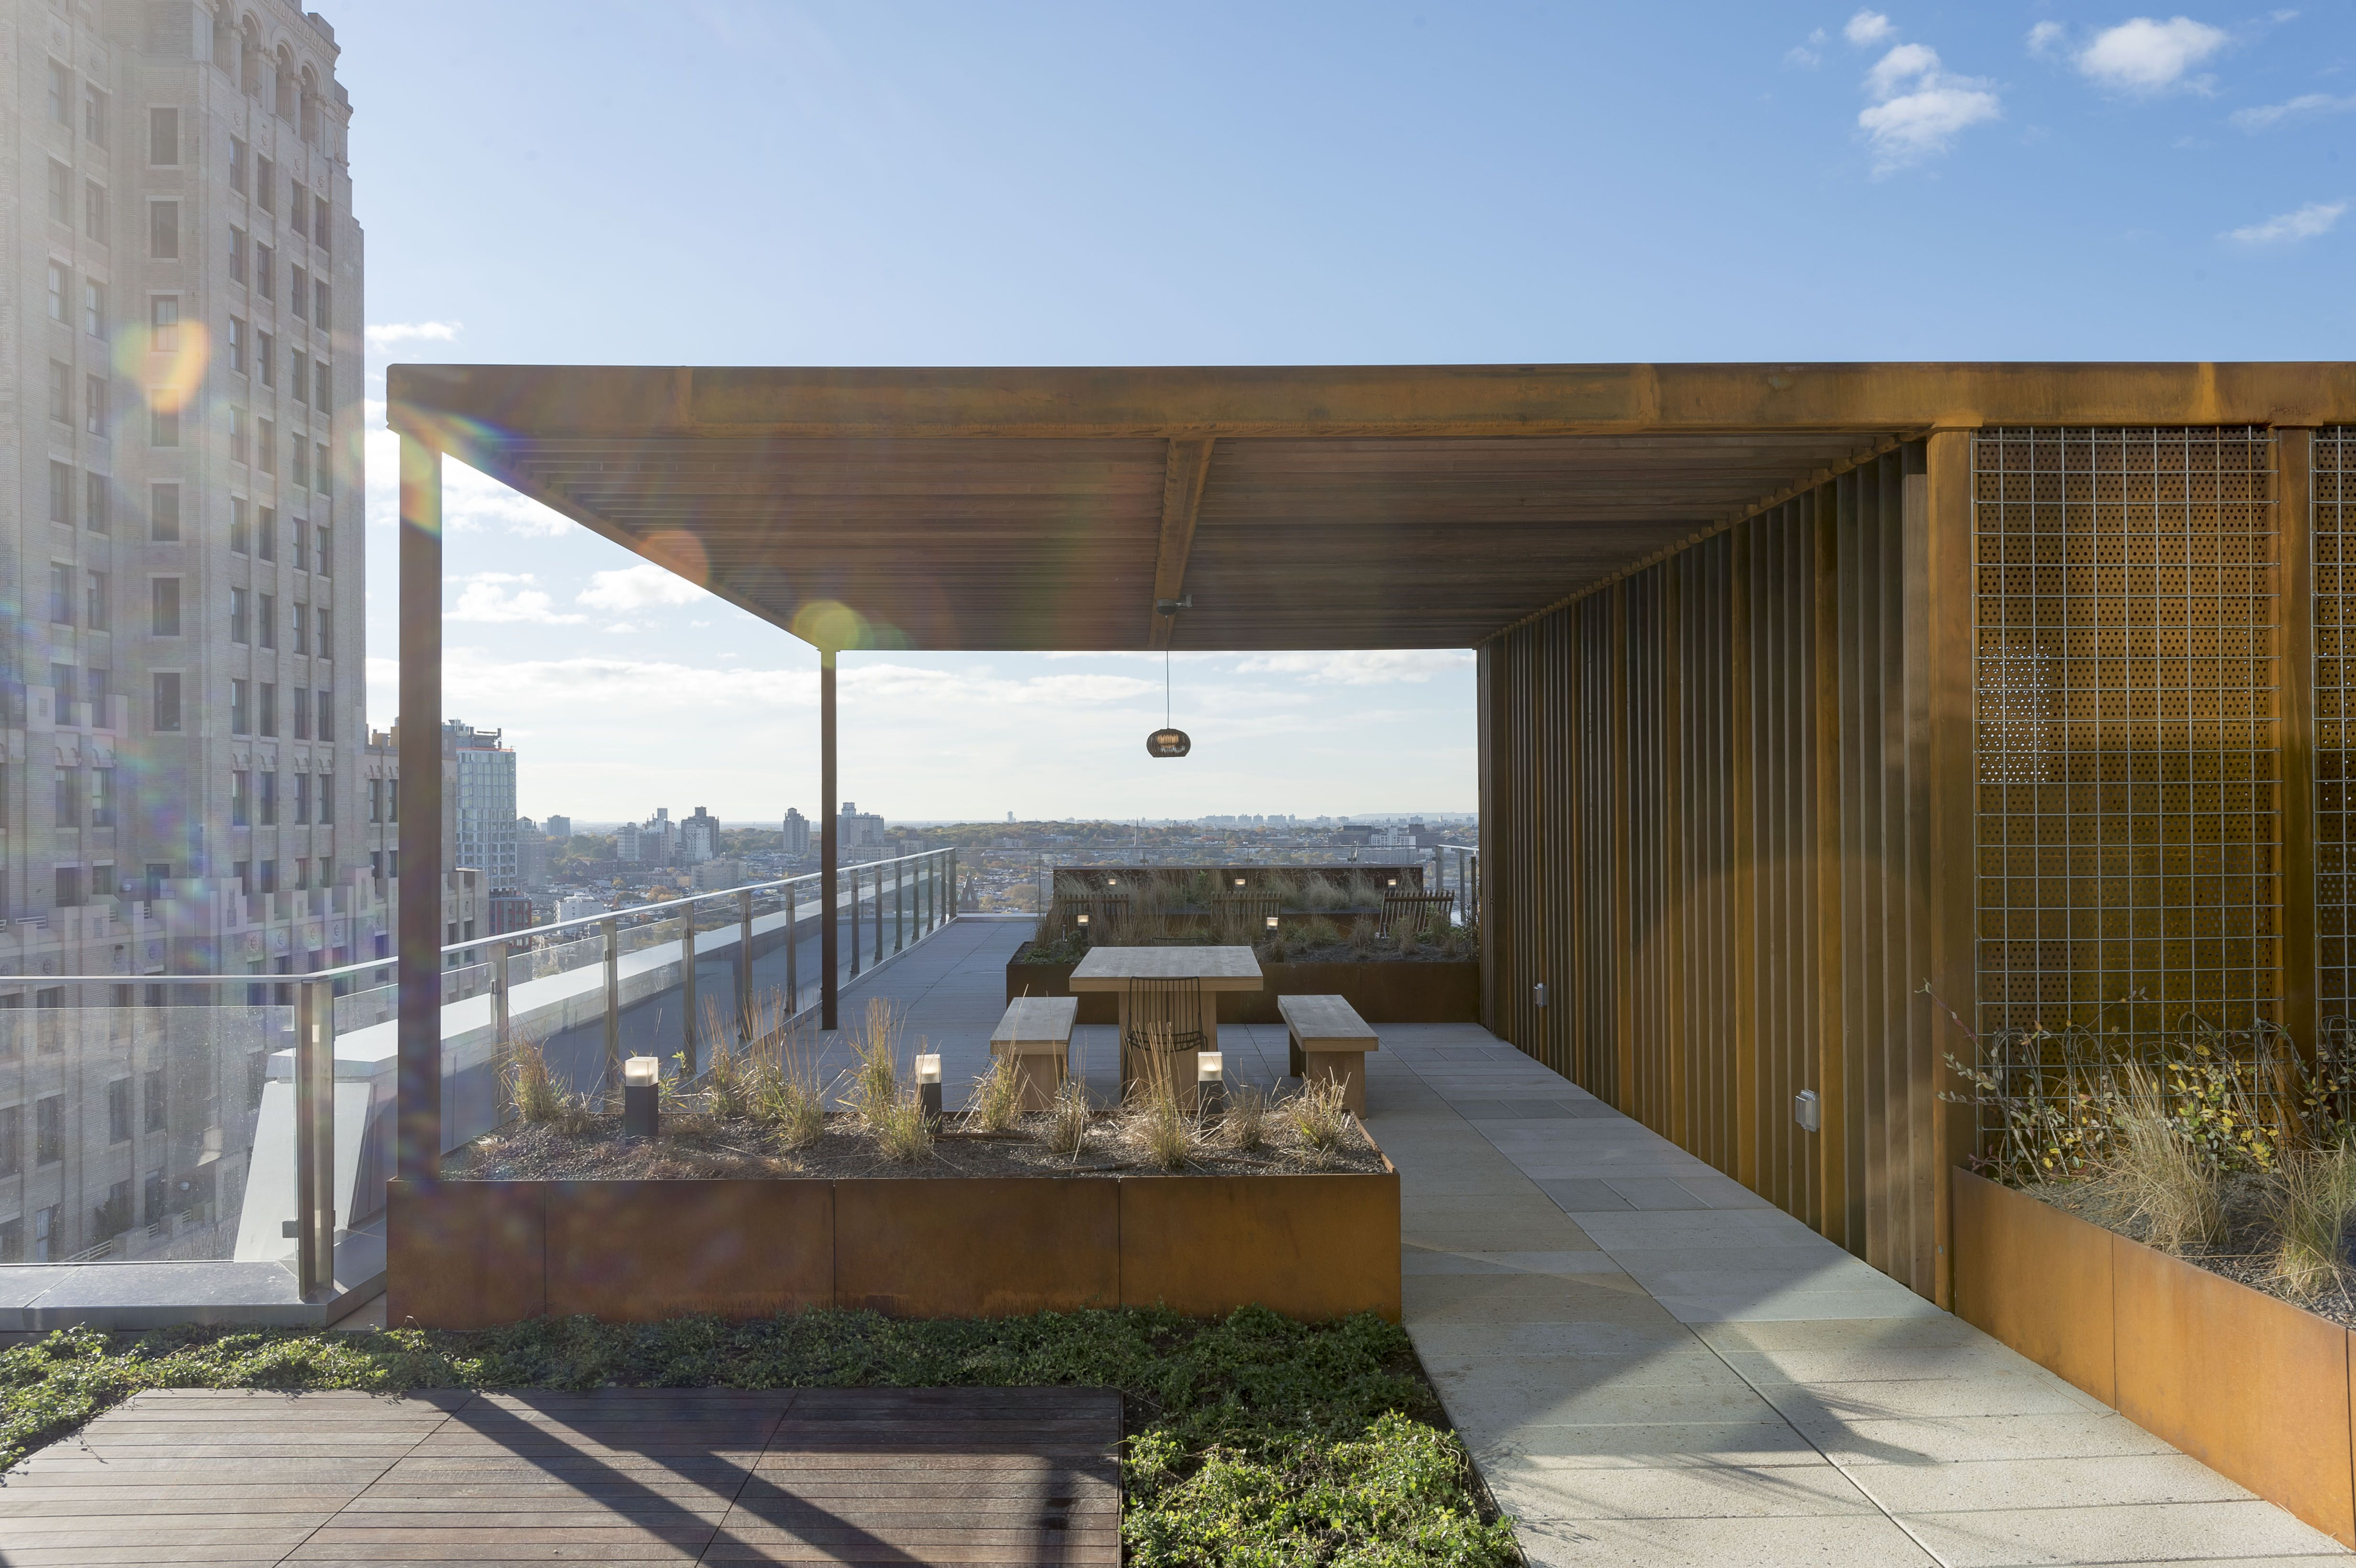 Great The Newly Released Photos Provide A Glimpse At The Buildingu0027s Roof Terrace  Which Comes With A Sun Deck That Offers Dramatic Views Of Brooklyn And The  East ...